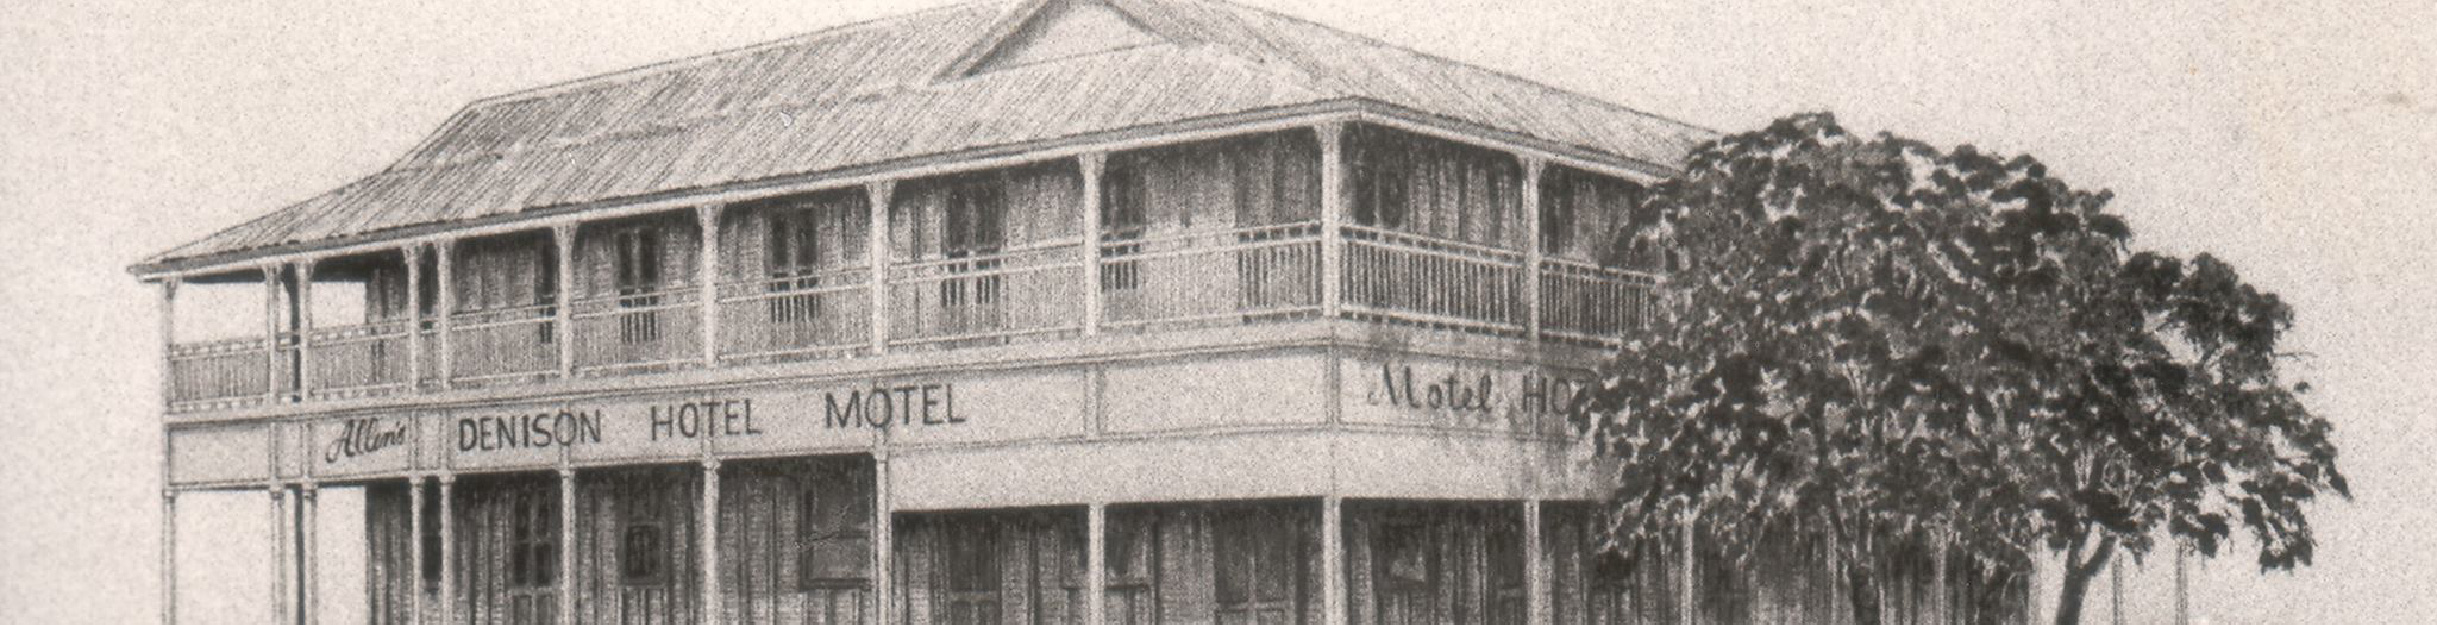 About Bowen Hotel